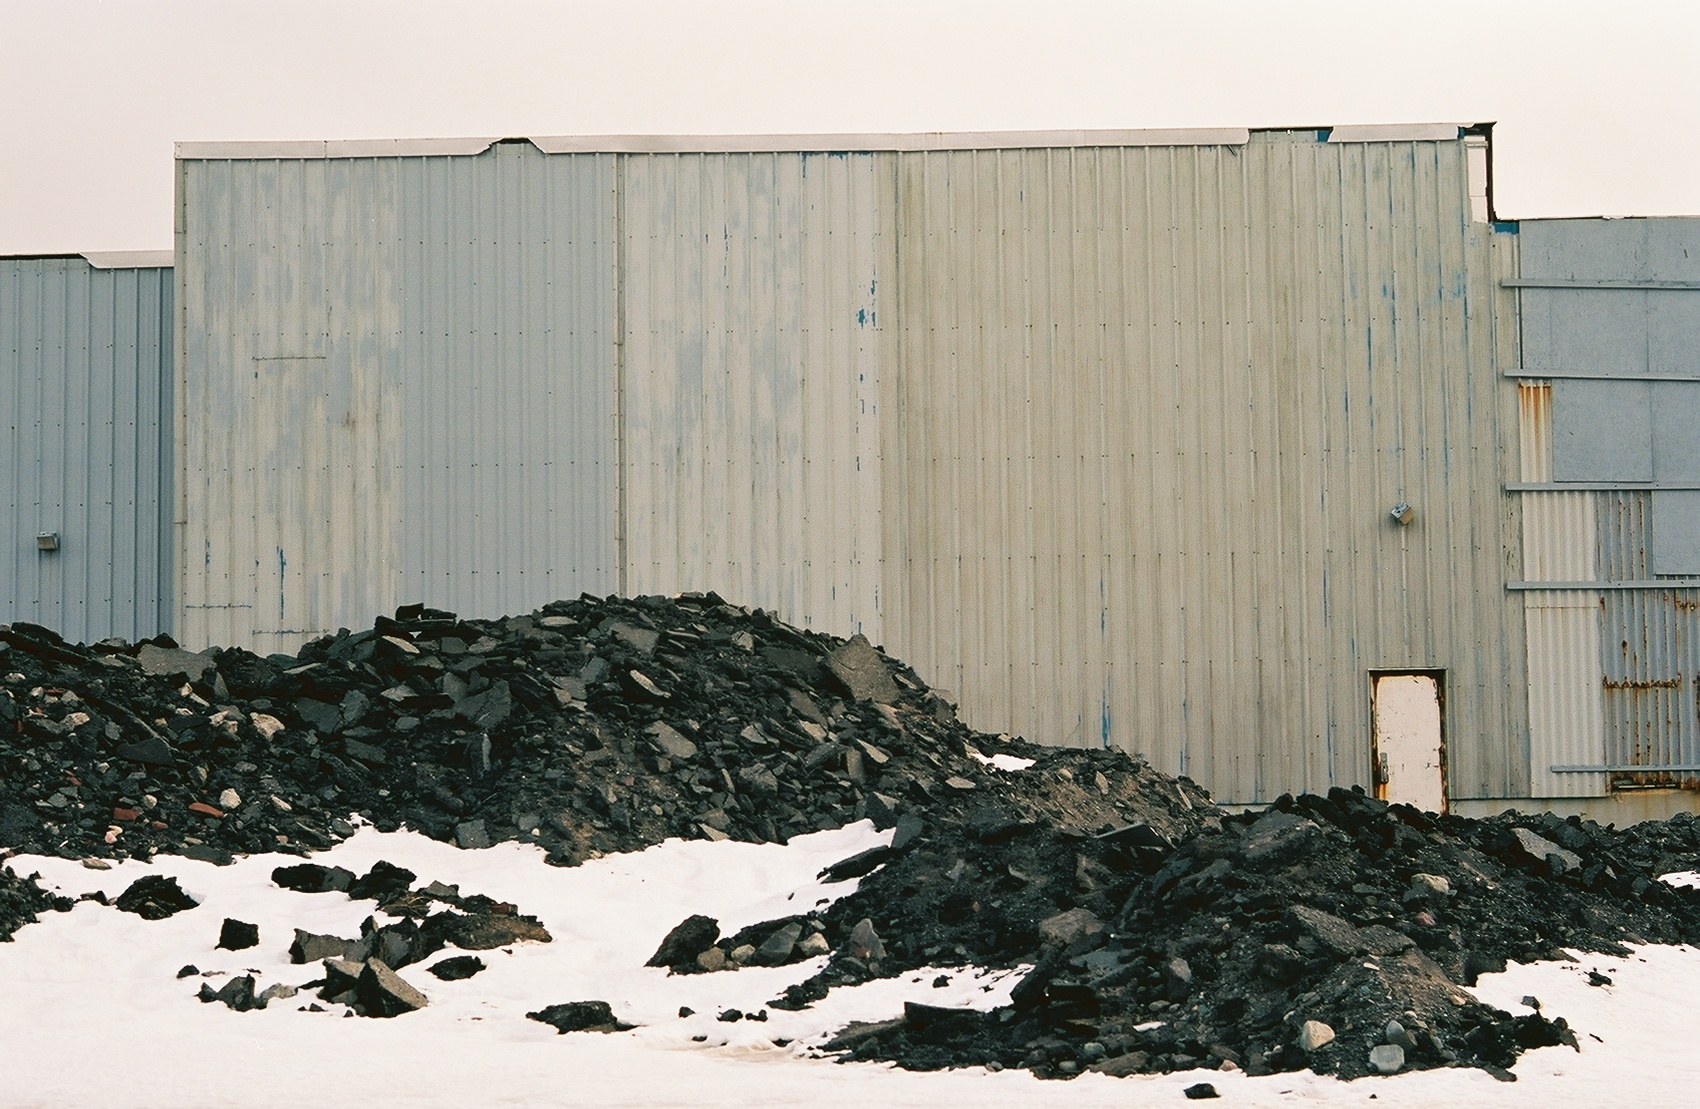 Other buildings slowly crumble. Mounds of excavated soil are also a common site.